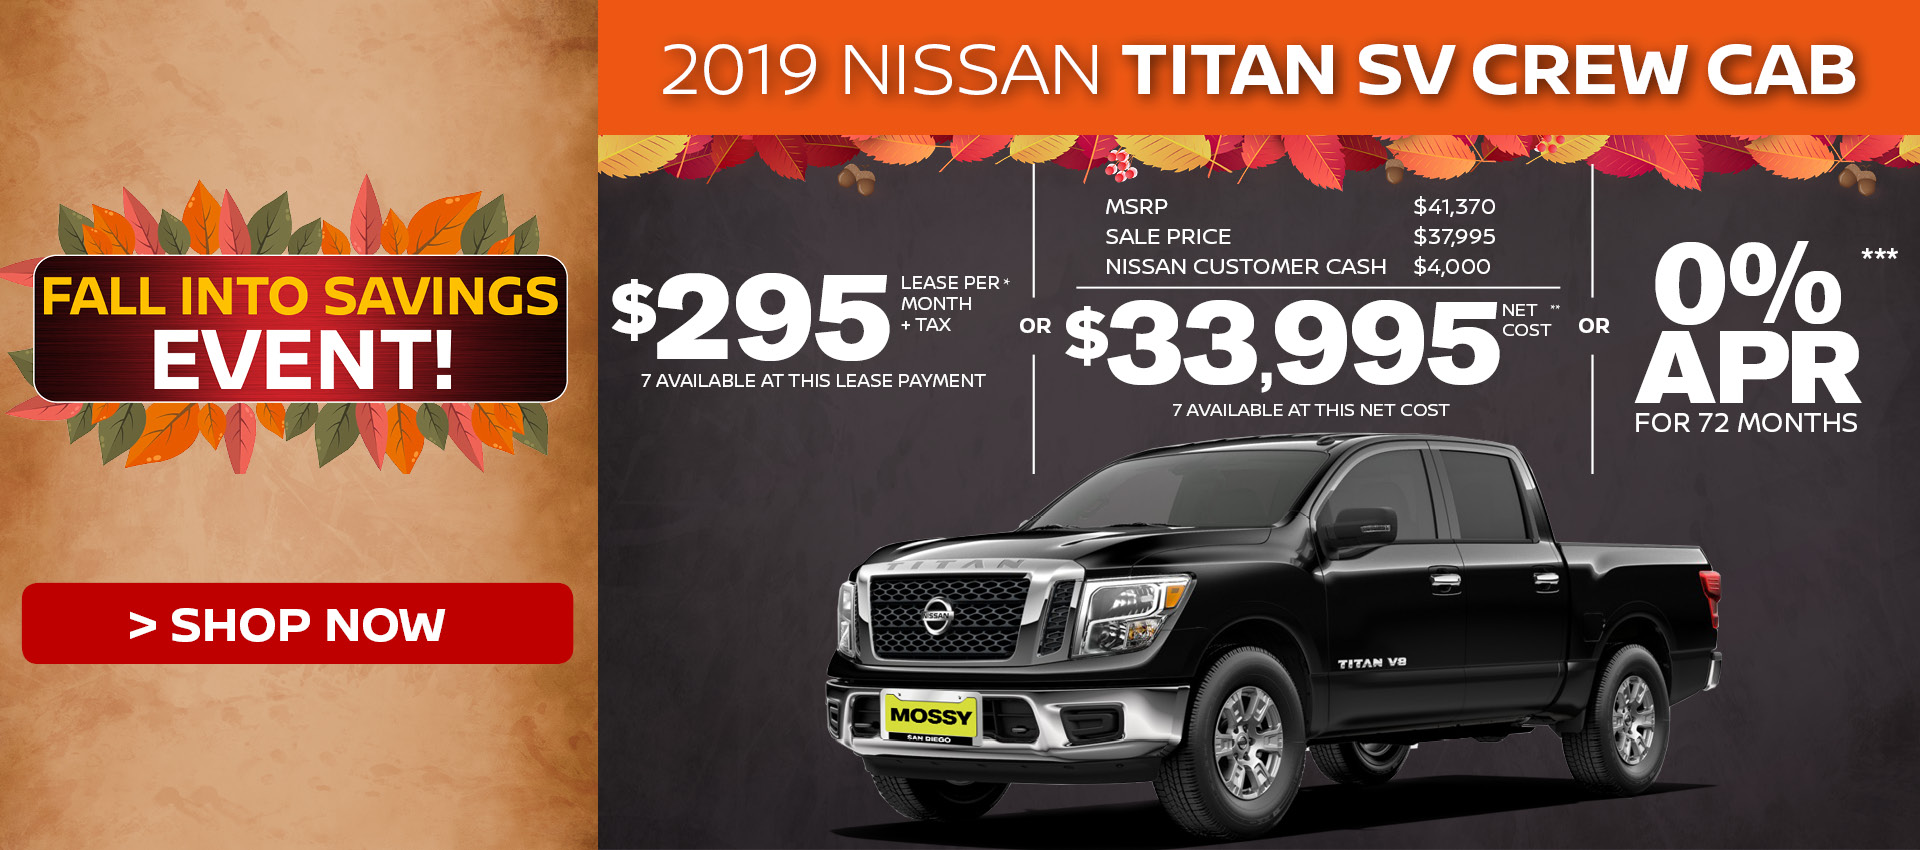 Mossy Nissan - Nissan Titan $33,995 Purchase HP